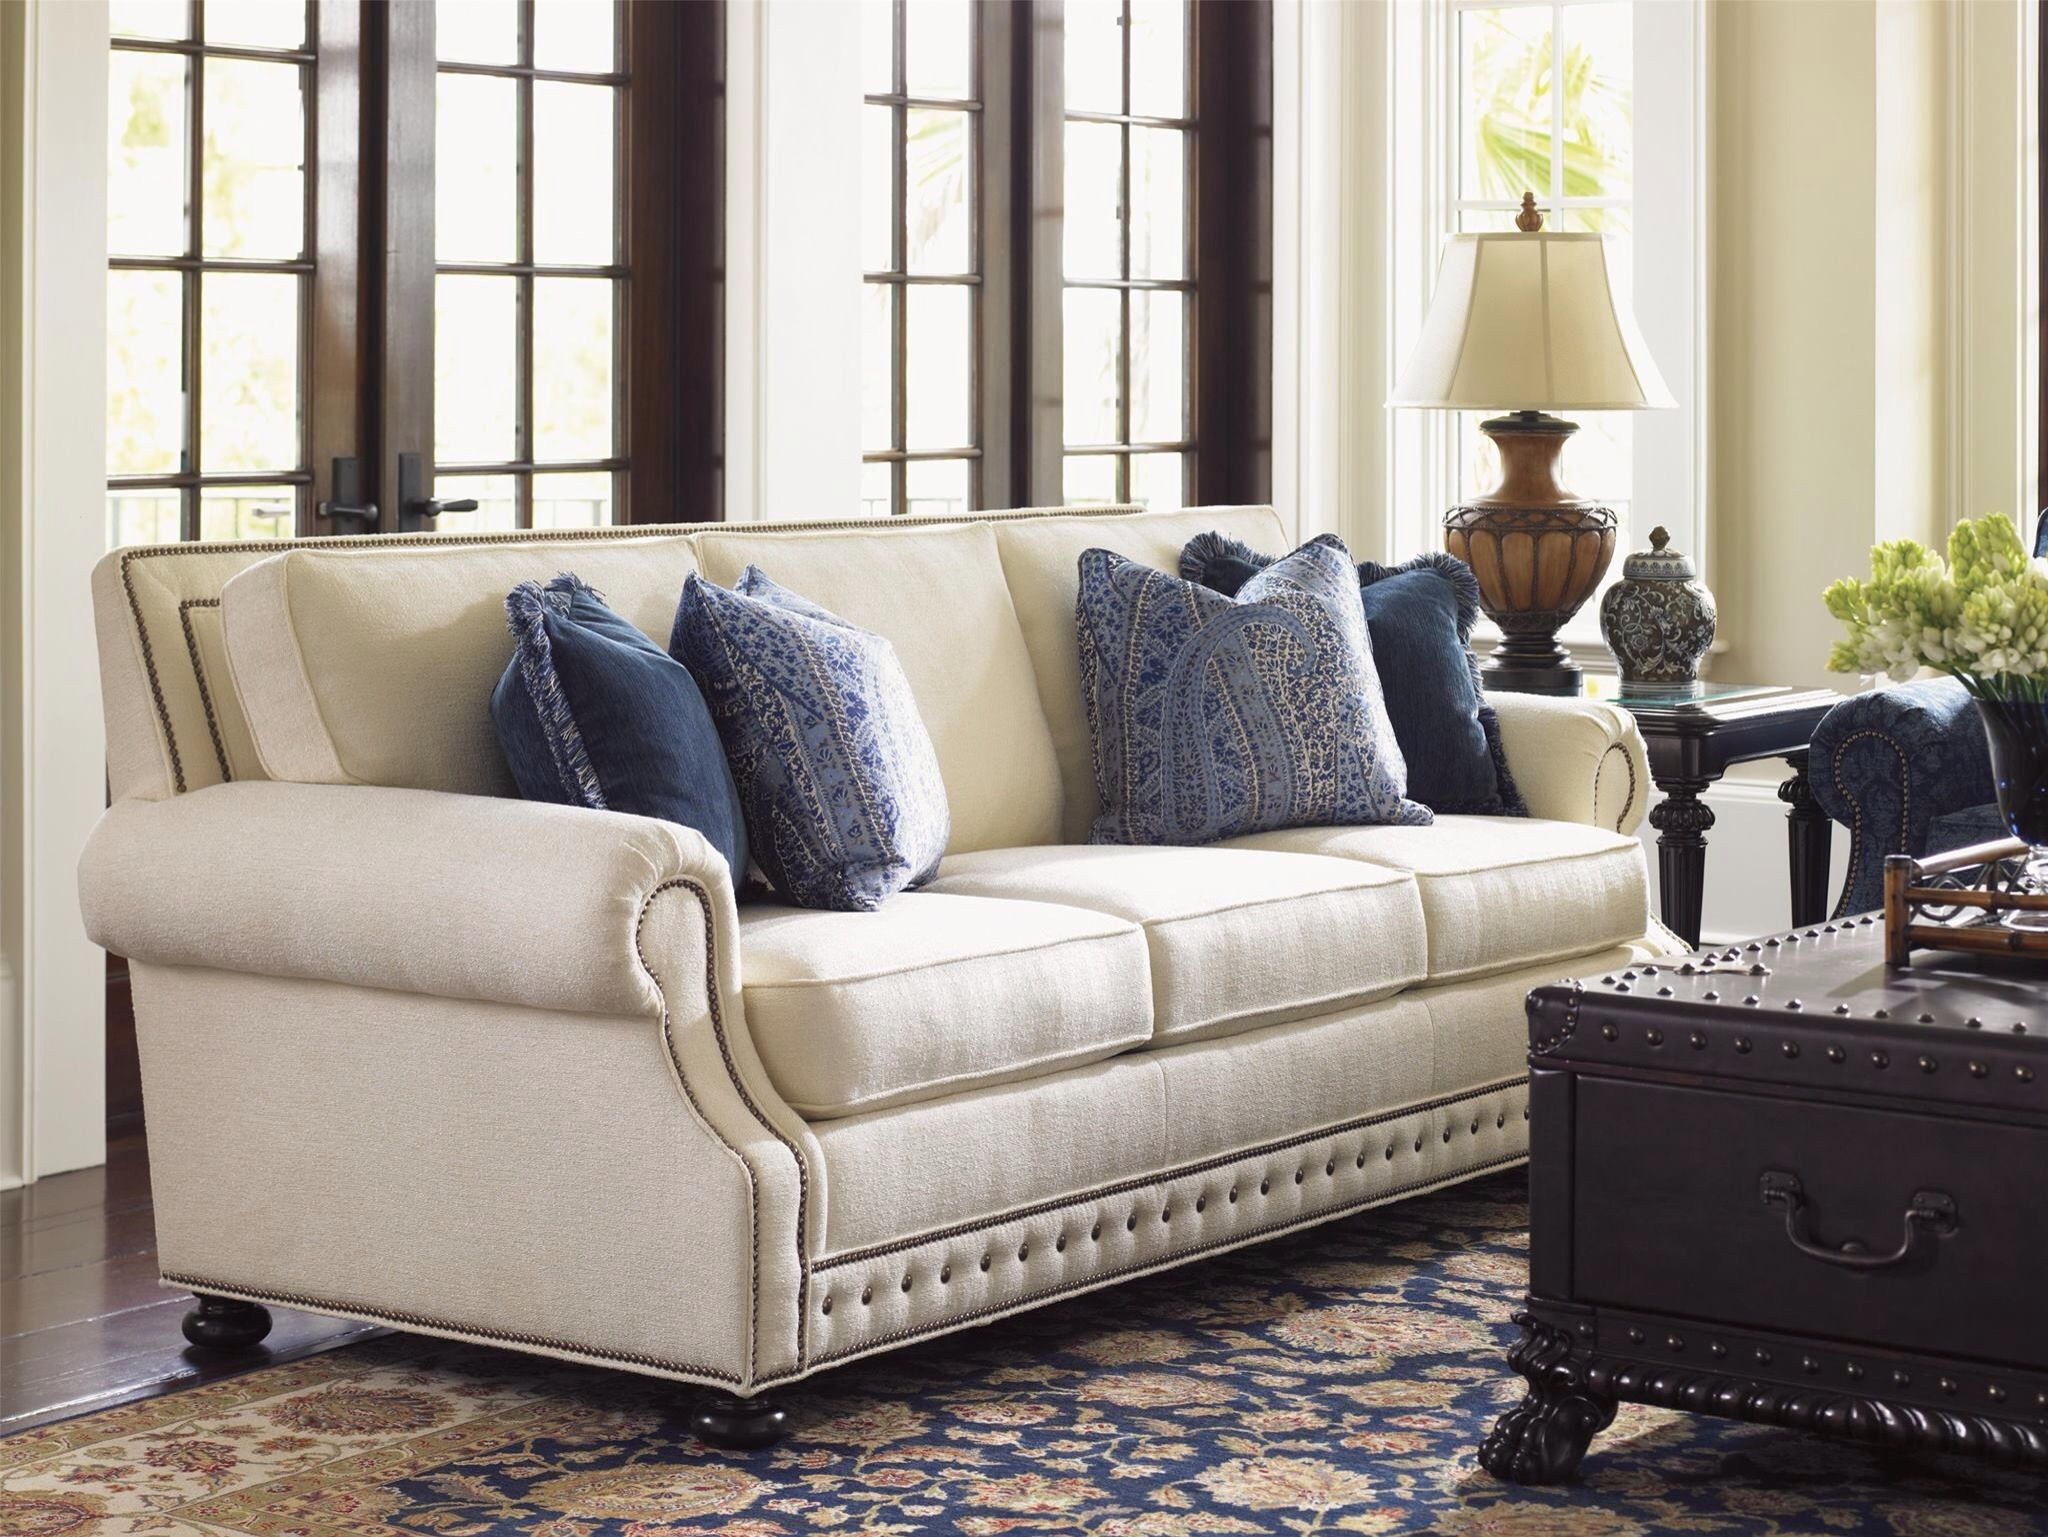 Lovely Cream Sofa With Blue Accents Koltuklar